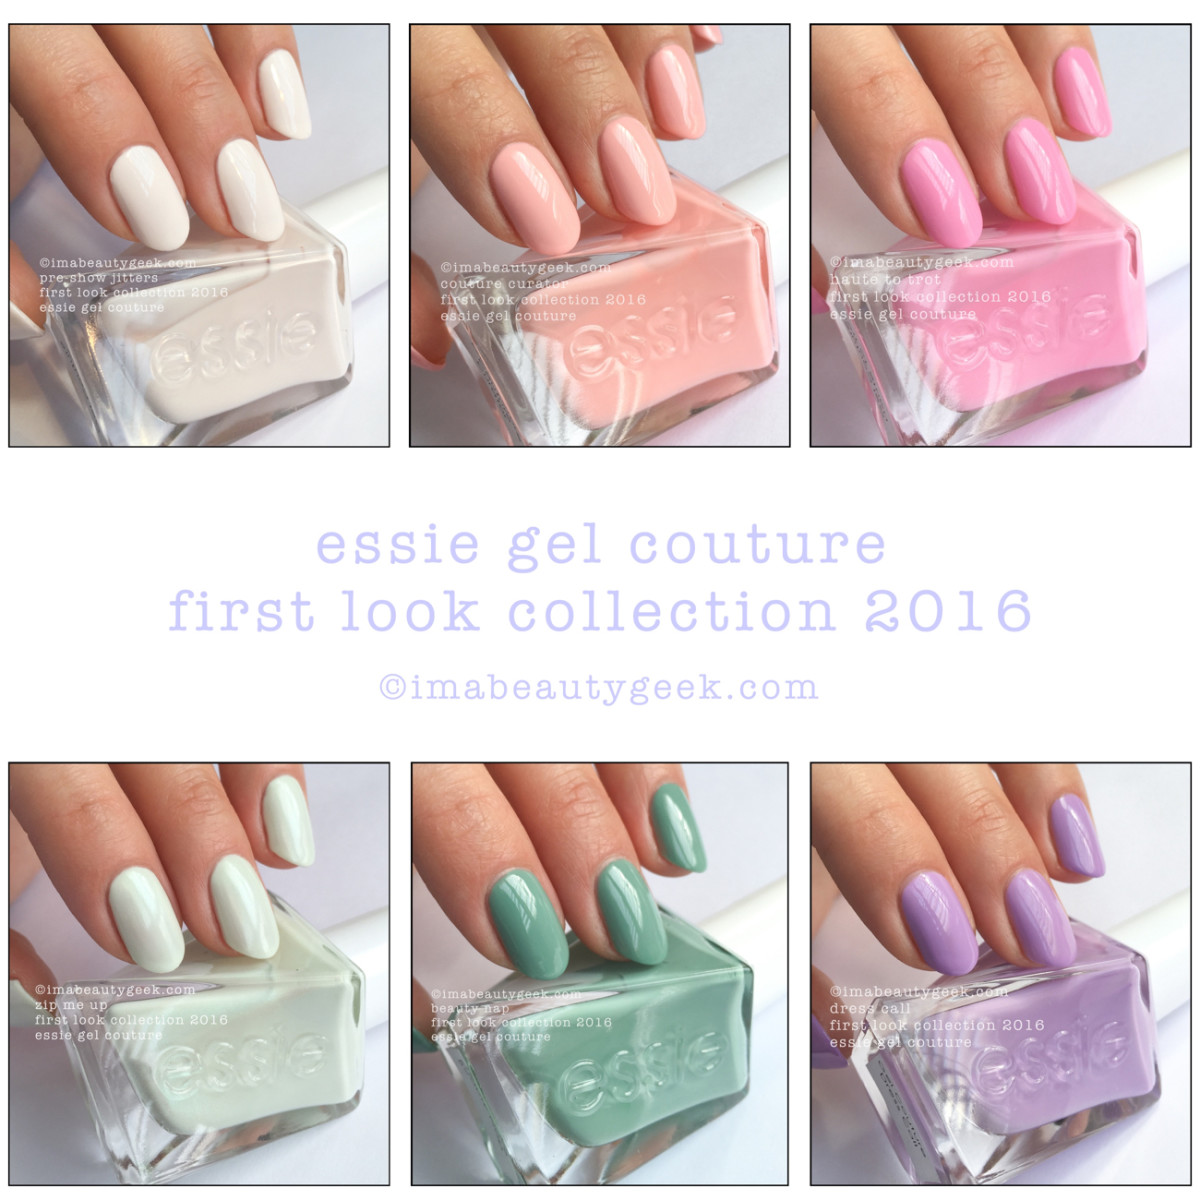 Essie Gel Couture nail polish: First Look collection